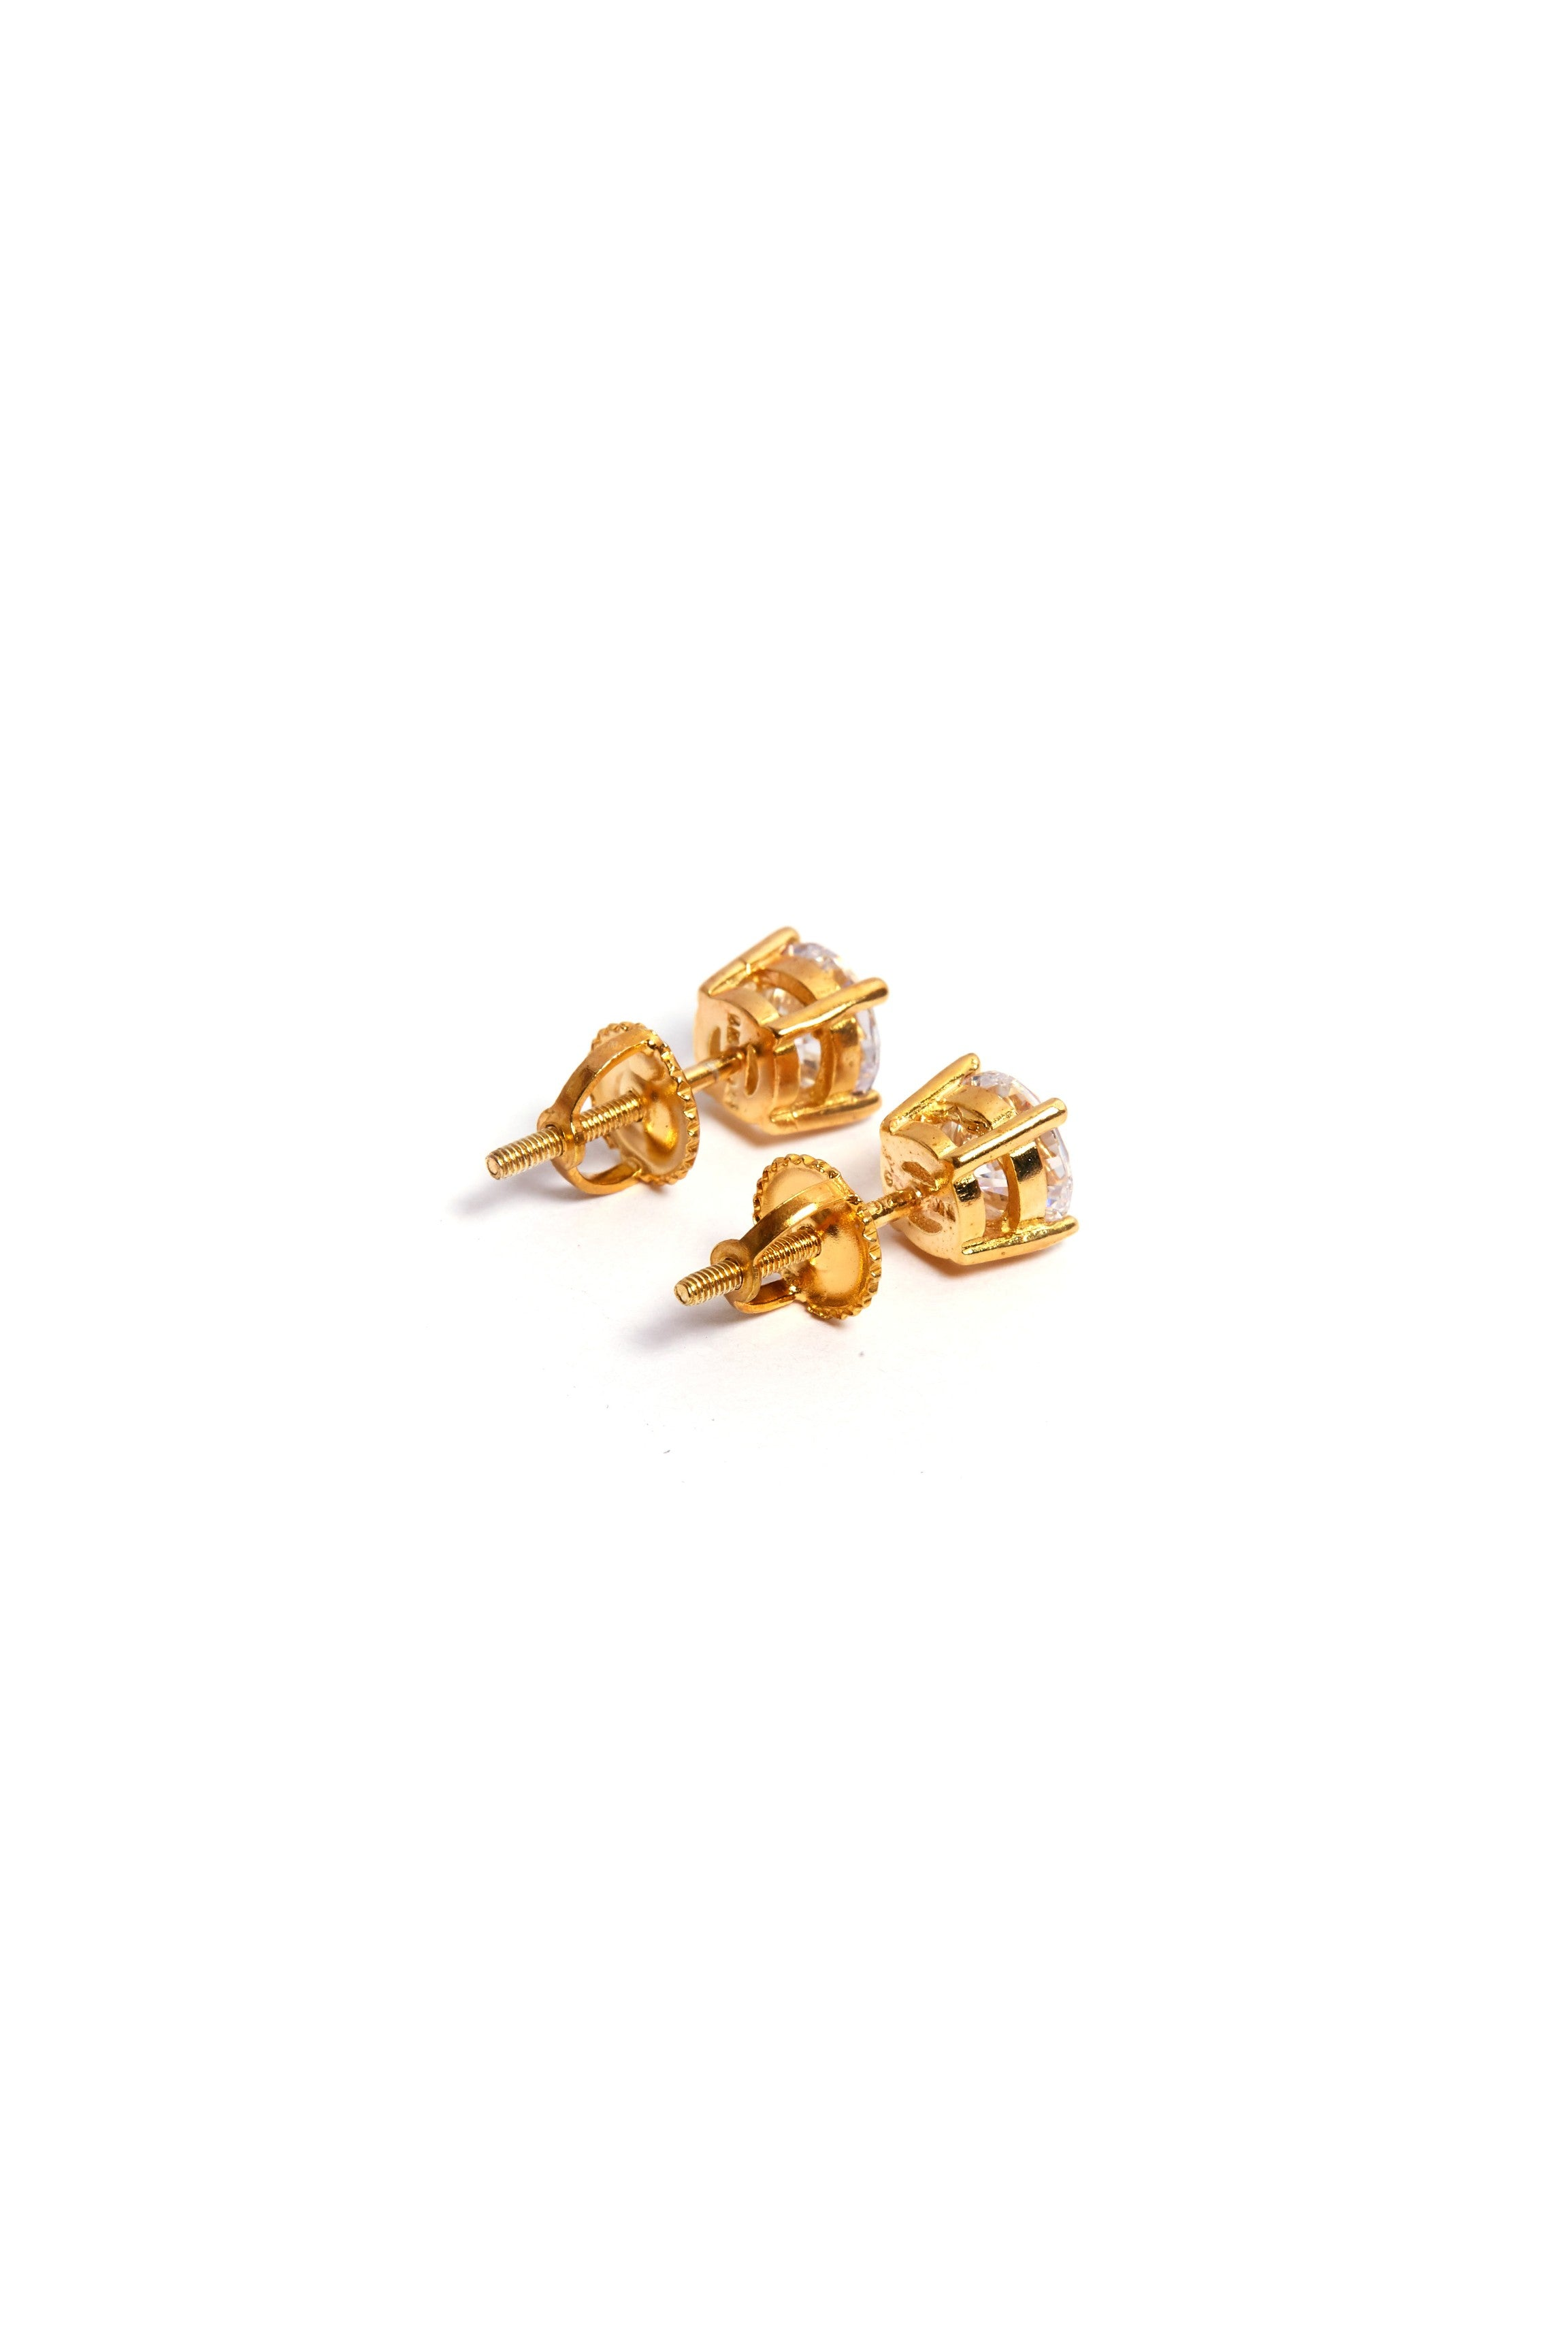 RHYS GOLD EARRINGS